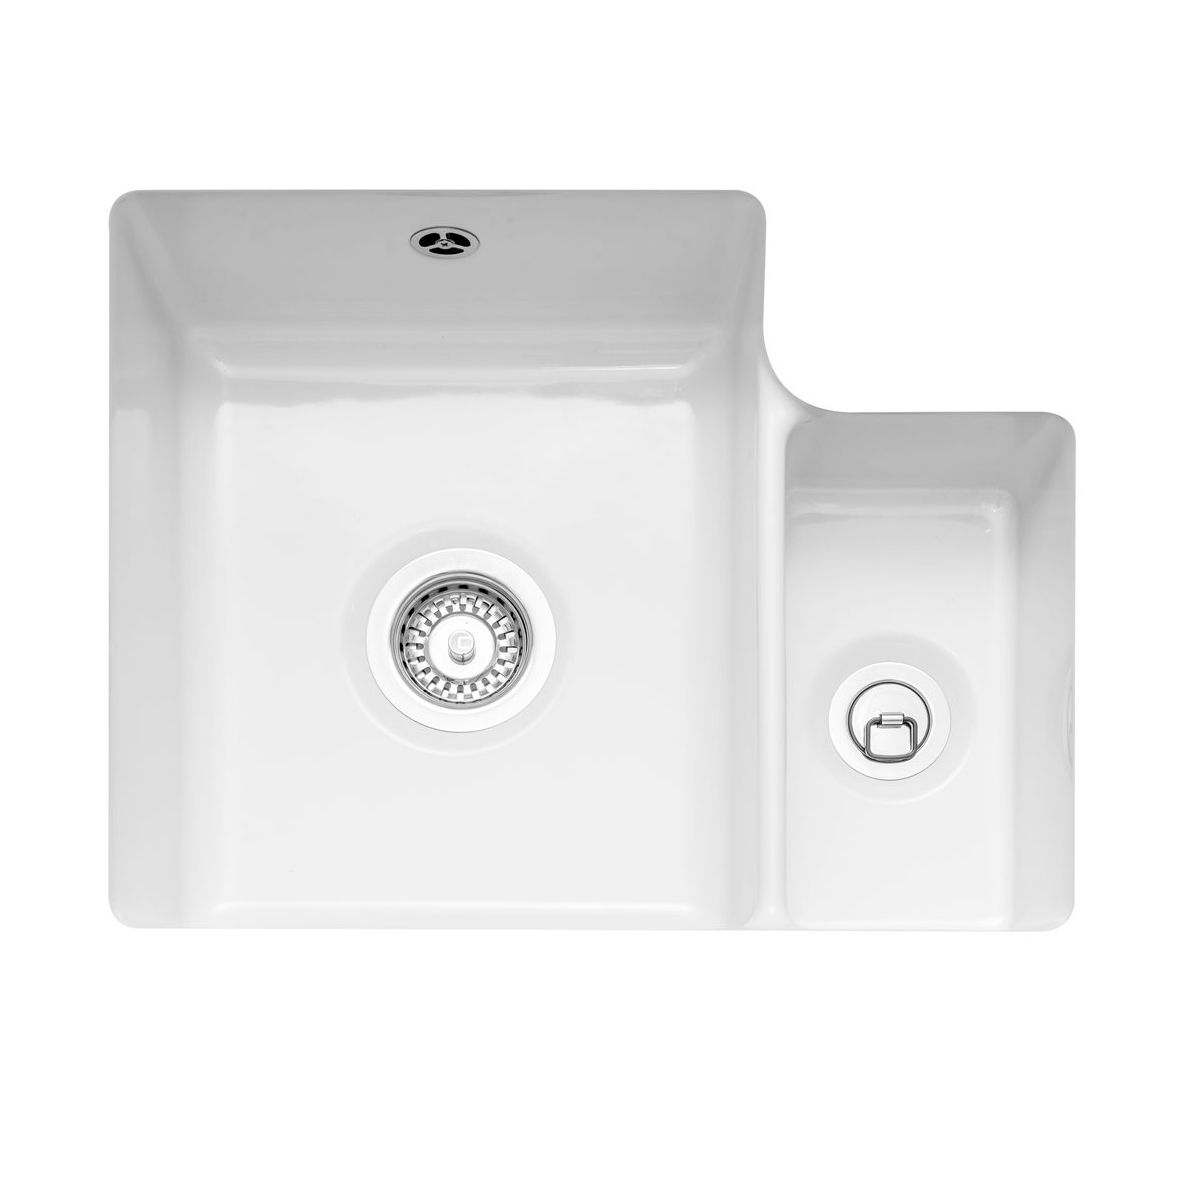 Caple ettra 150 ceramic undermount kitchen sink sinks - Undermount ceramic kitchen sink ...